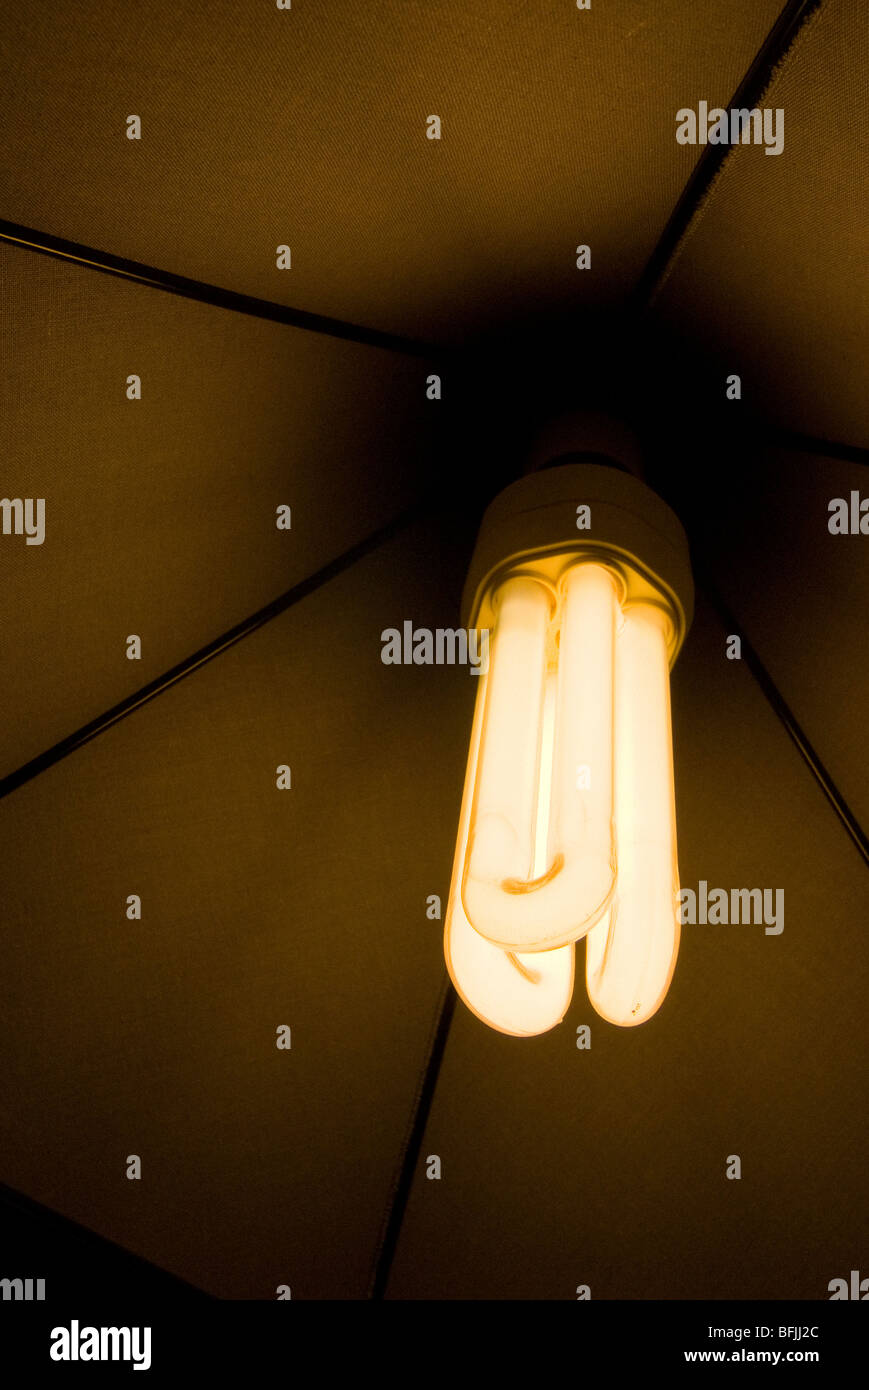 low energy light bulb switched on and glowing - Stock Image